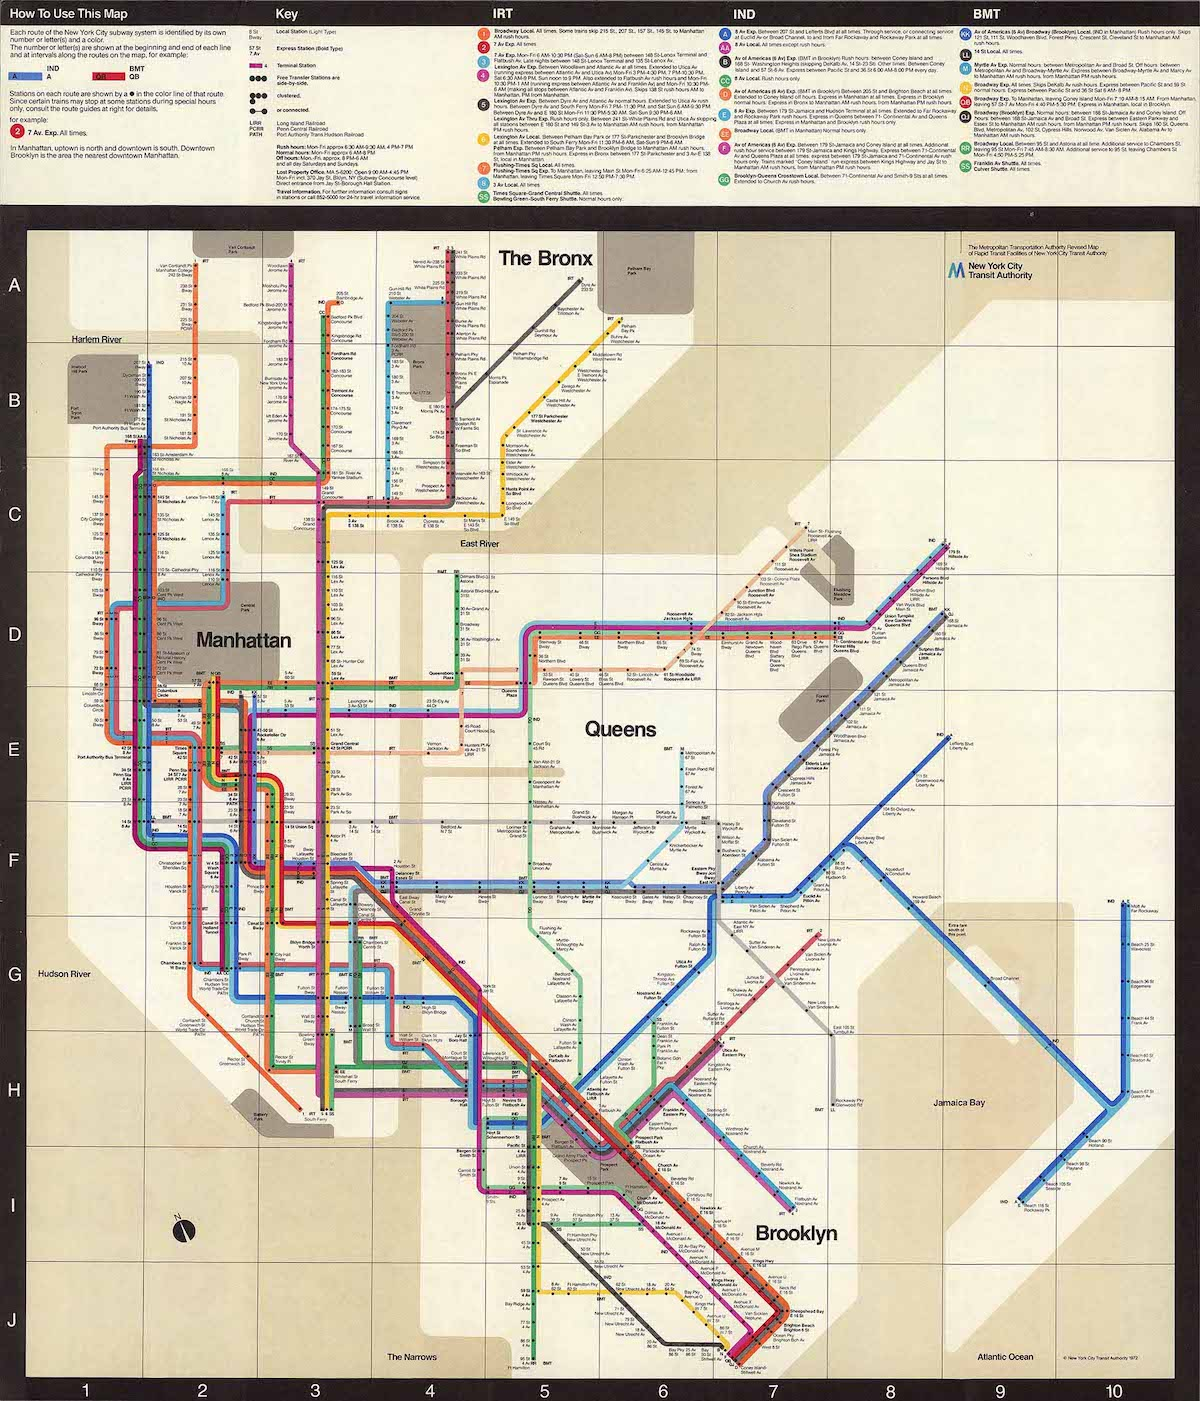 1972 Vignelli NYC Subway Diagram Map - Design Is Not Art: Uncovering the Brilliant Logic Behind Massimo Vignelli's Famous Designs